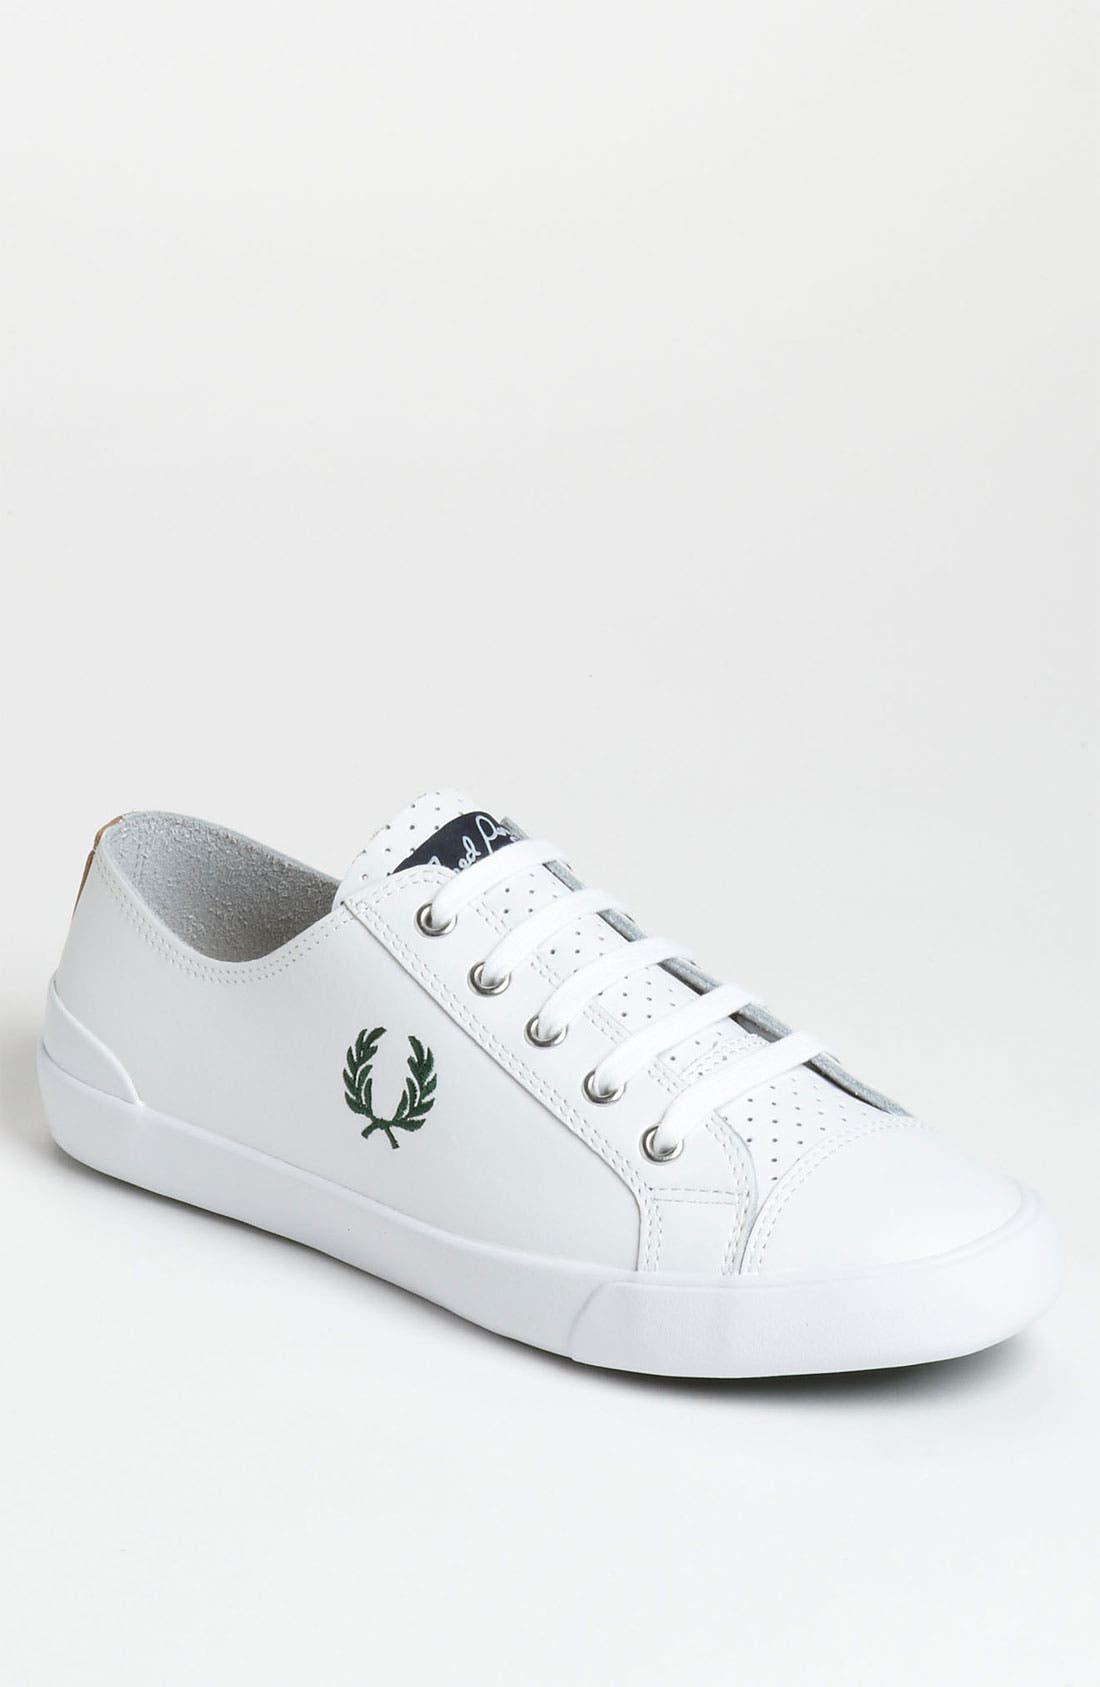 Alternate Image 1 Selected - Fred Perry 'Beresford' Sneaker